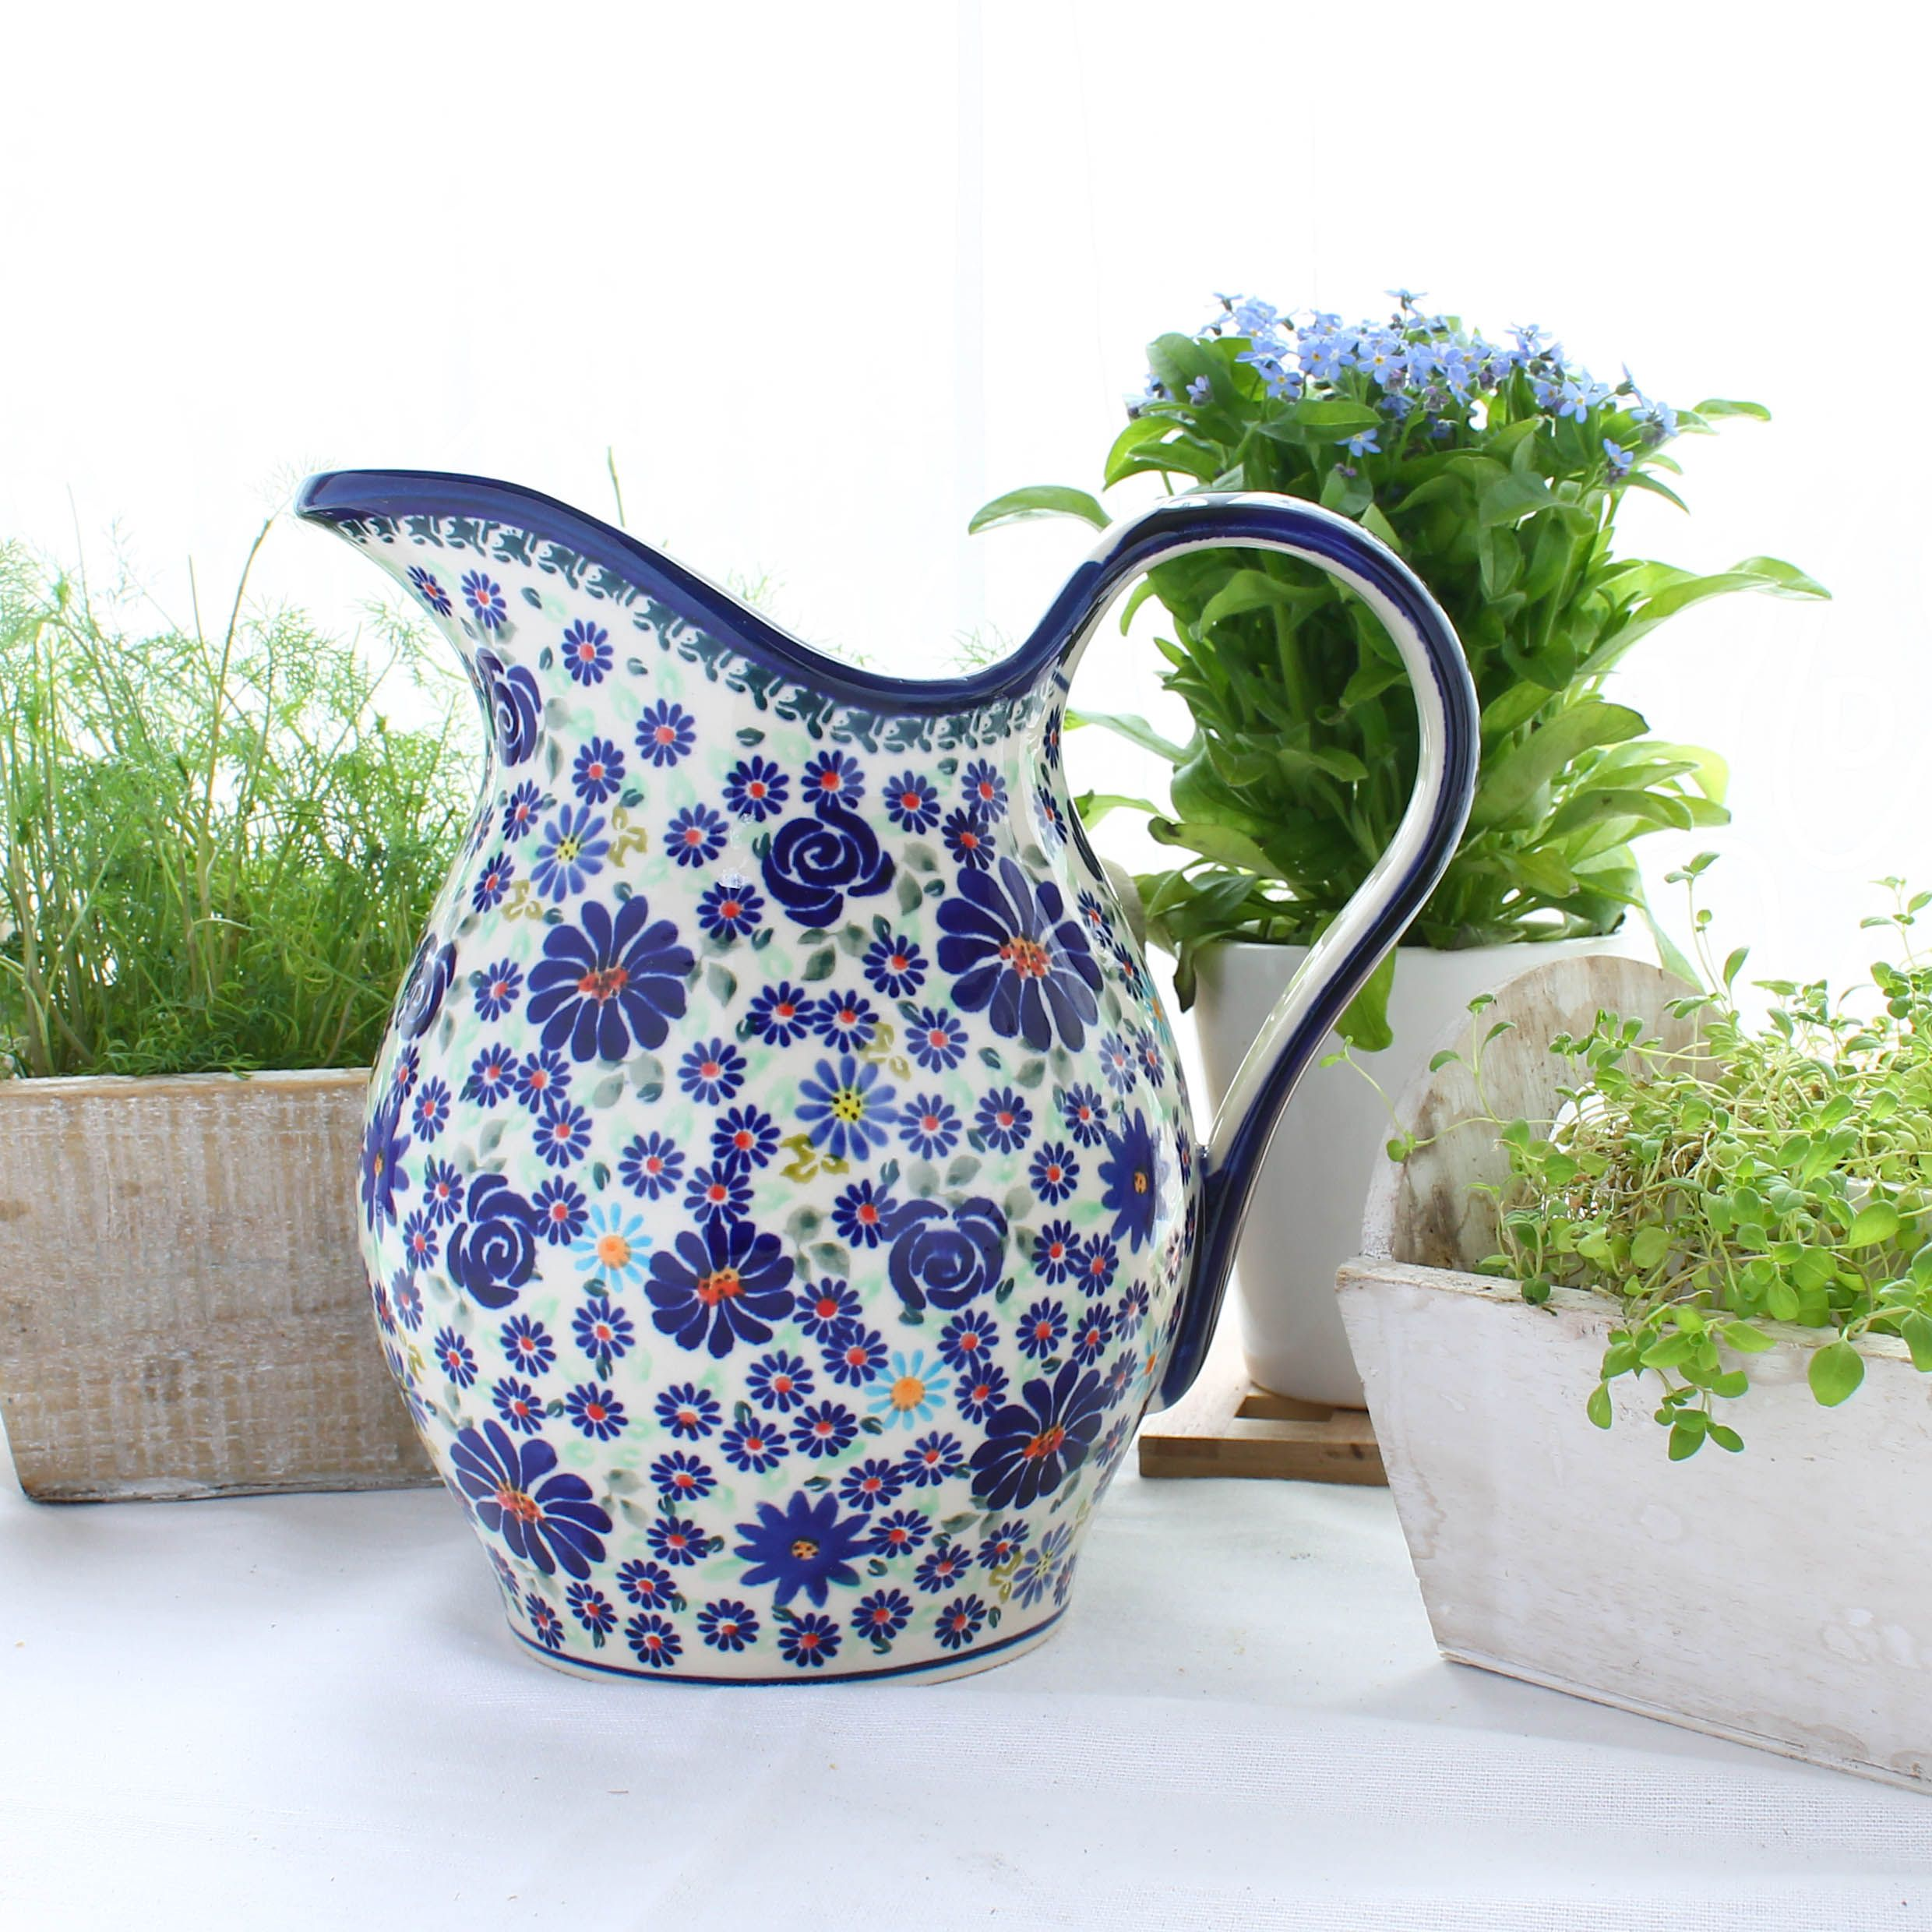 Love This Pitcher How Beautiful It Looks At The Outdoor Table Keramik